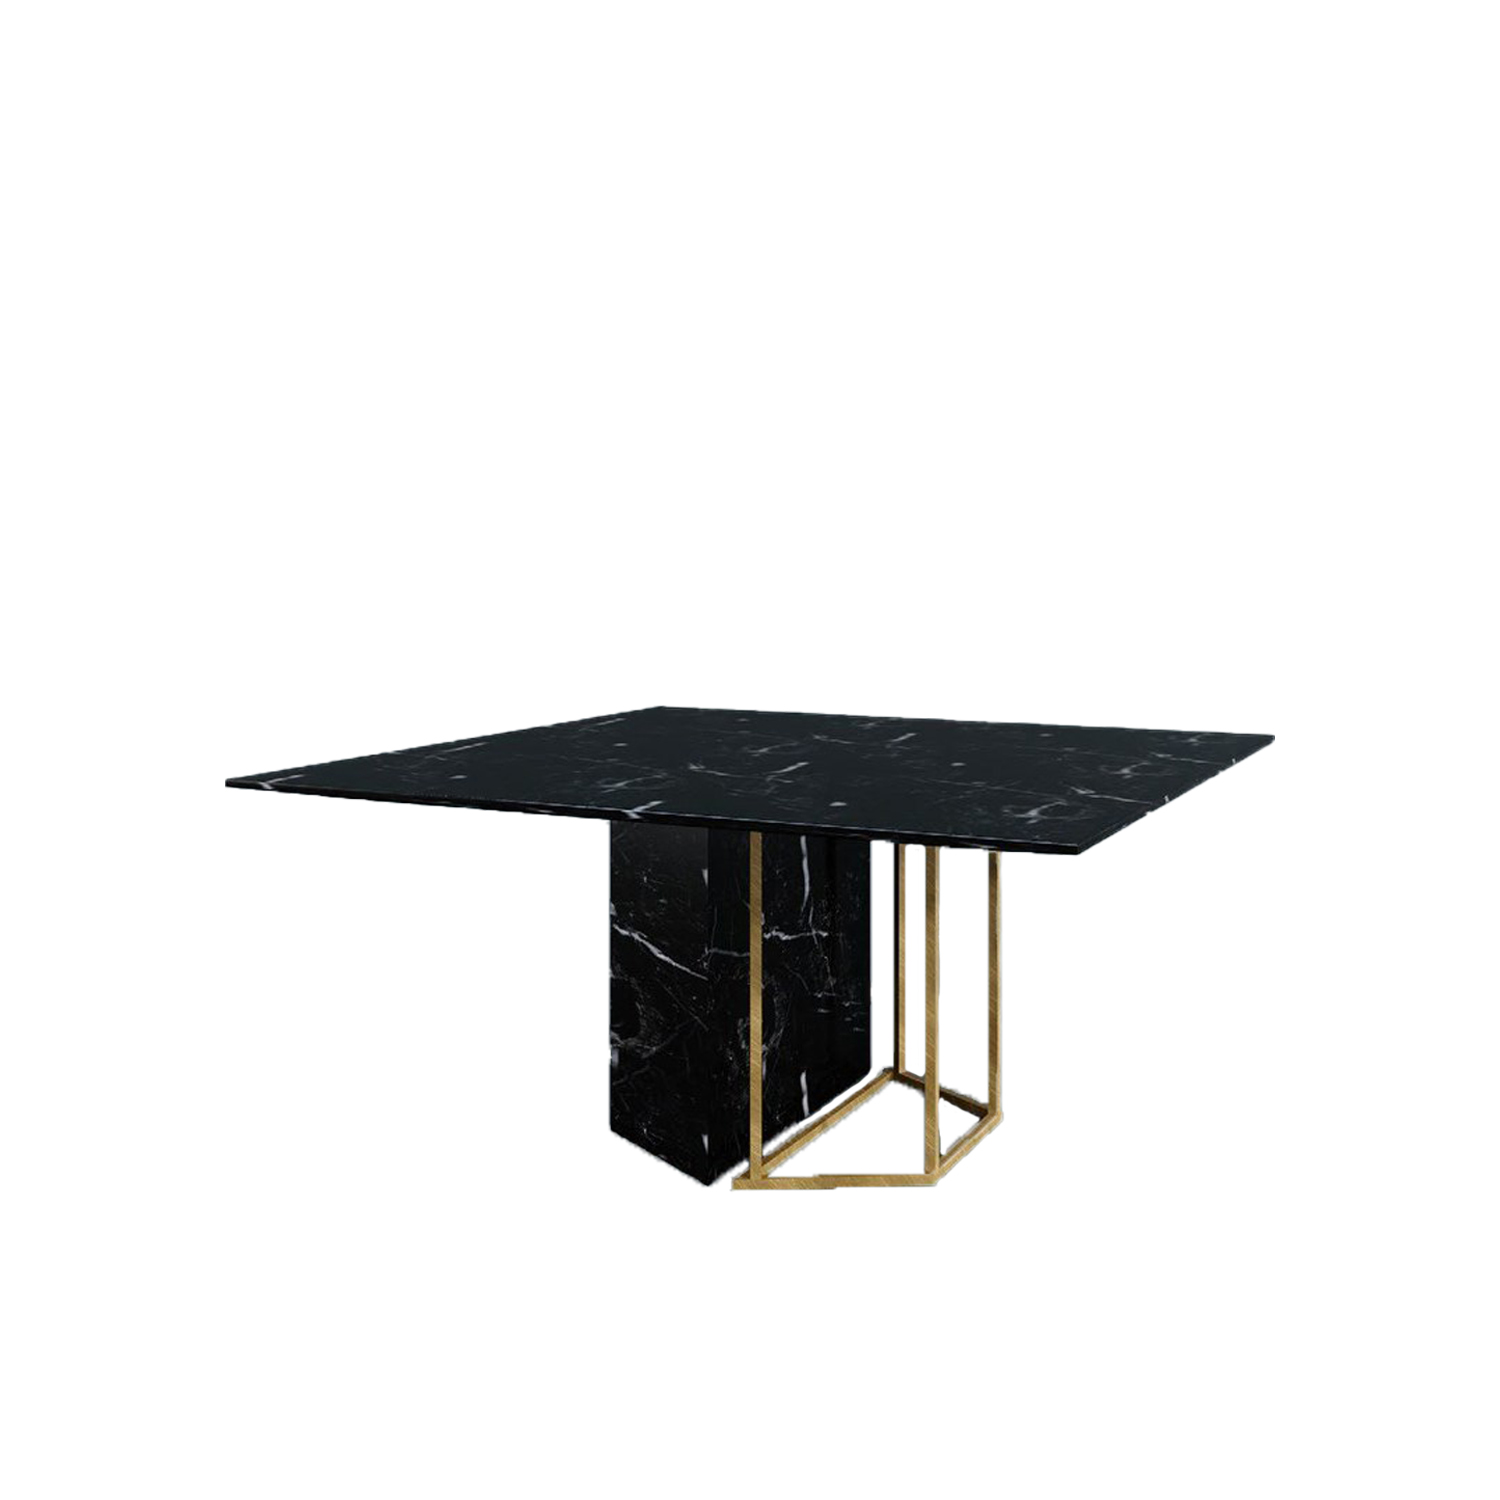 Plinto Square Dining Table - Dining tables with metal base with plinth. Tops in different models and dimensions.